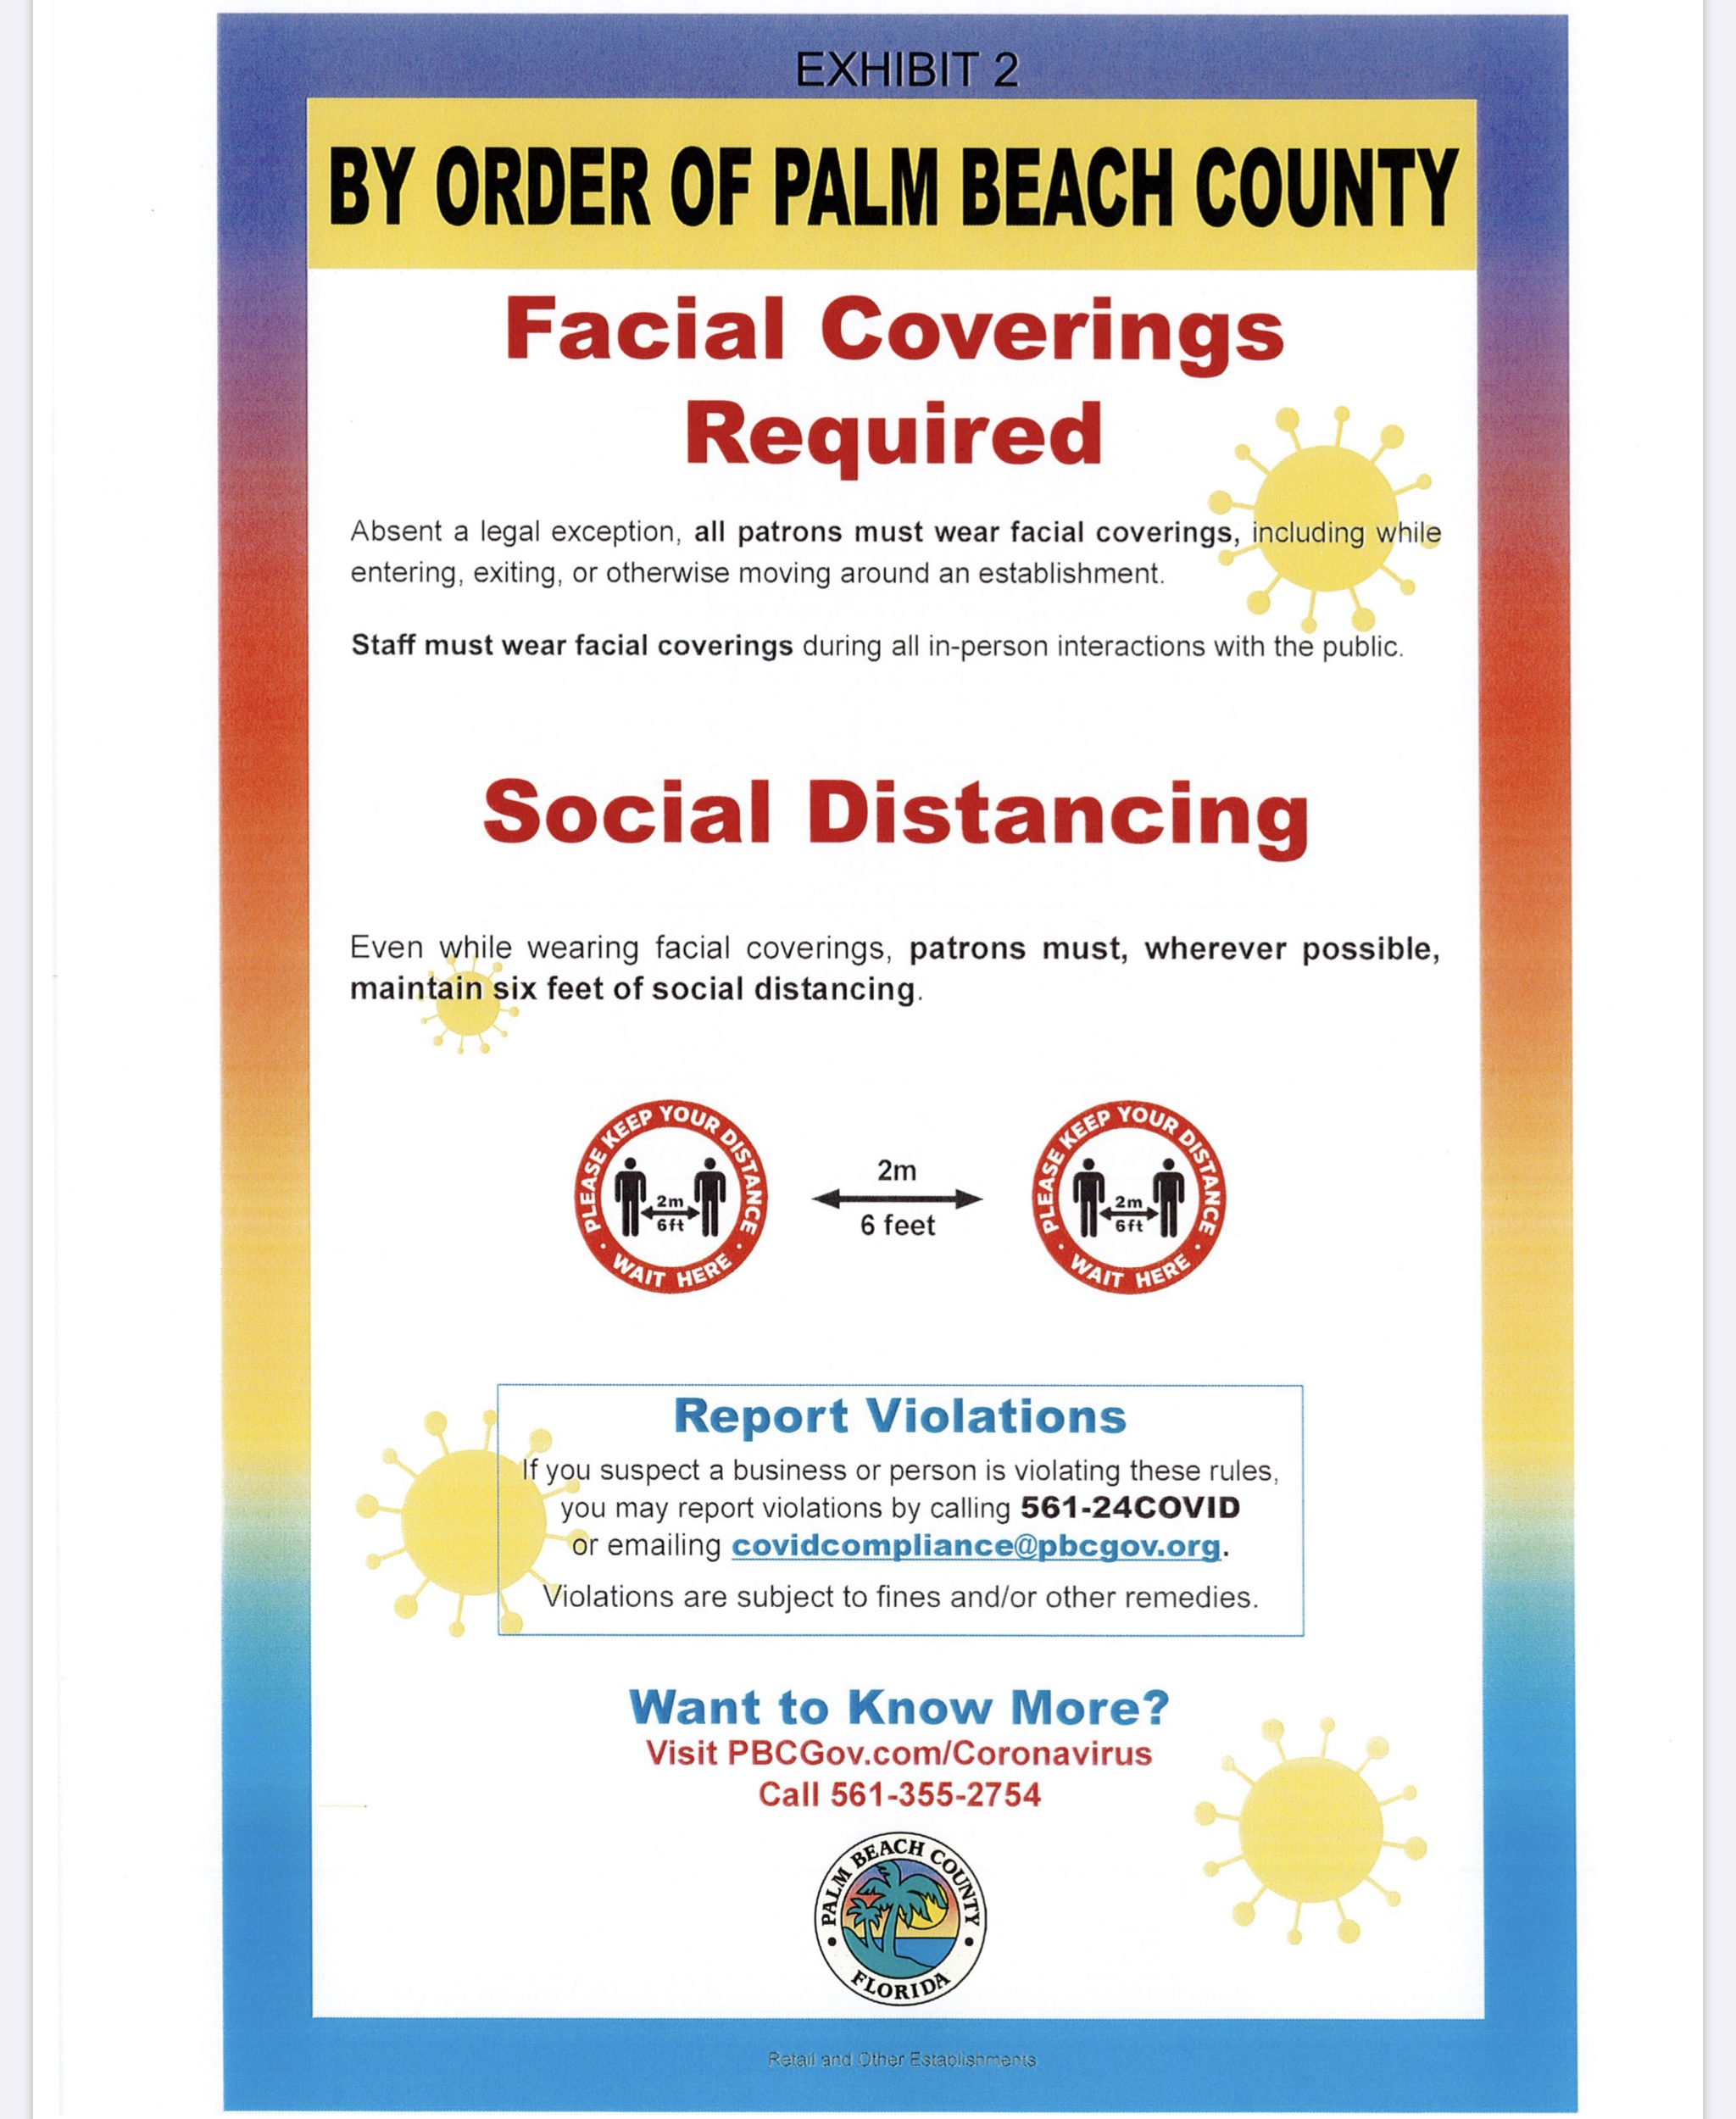 palm beach county facial covering order